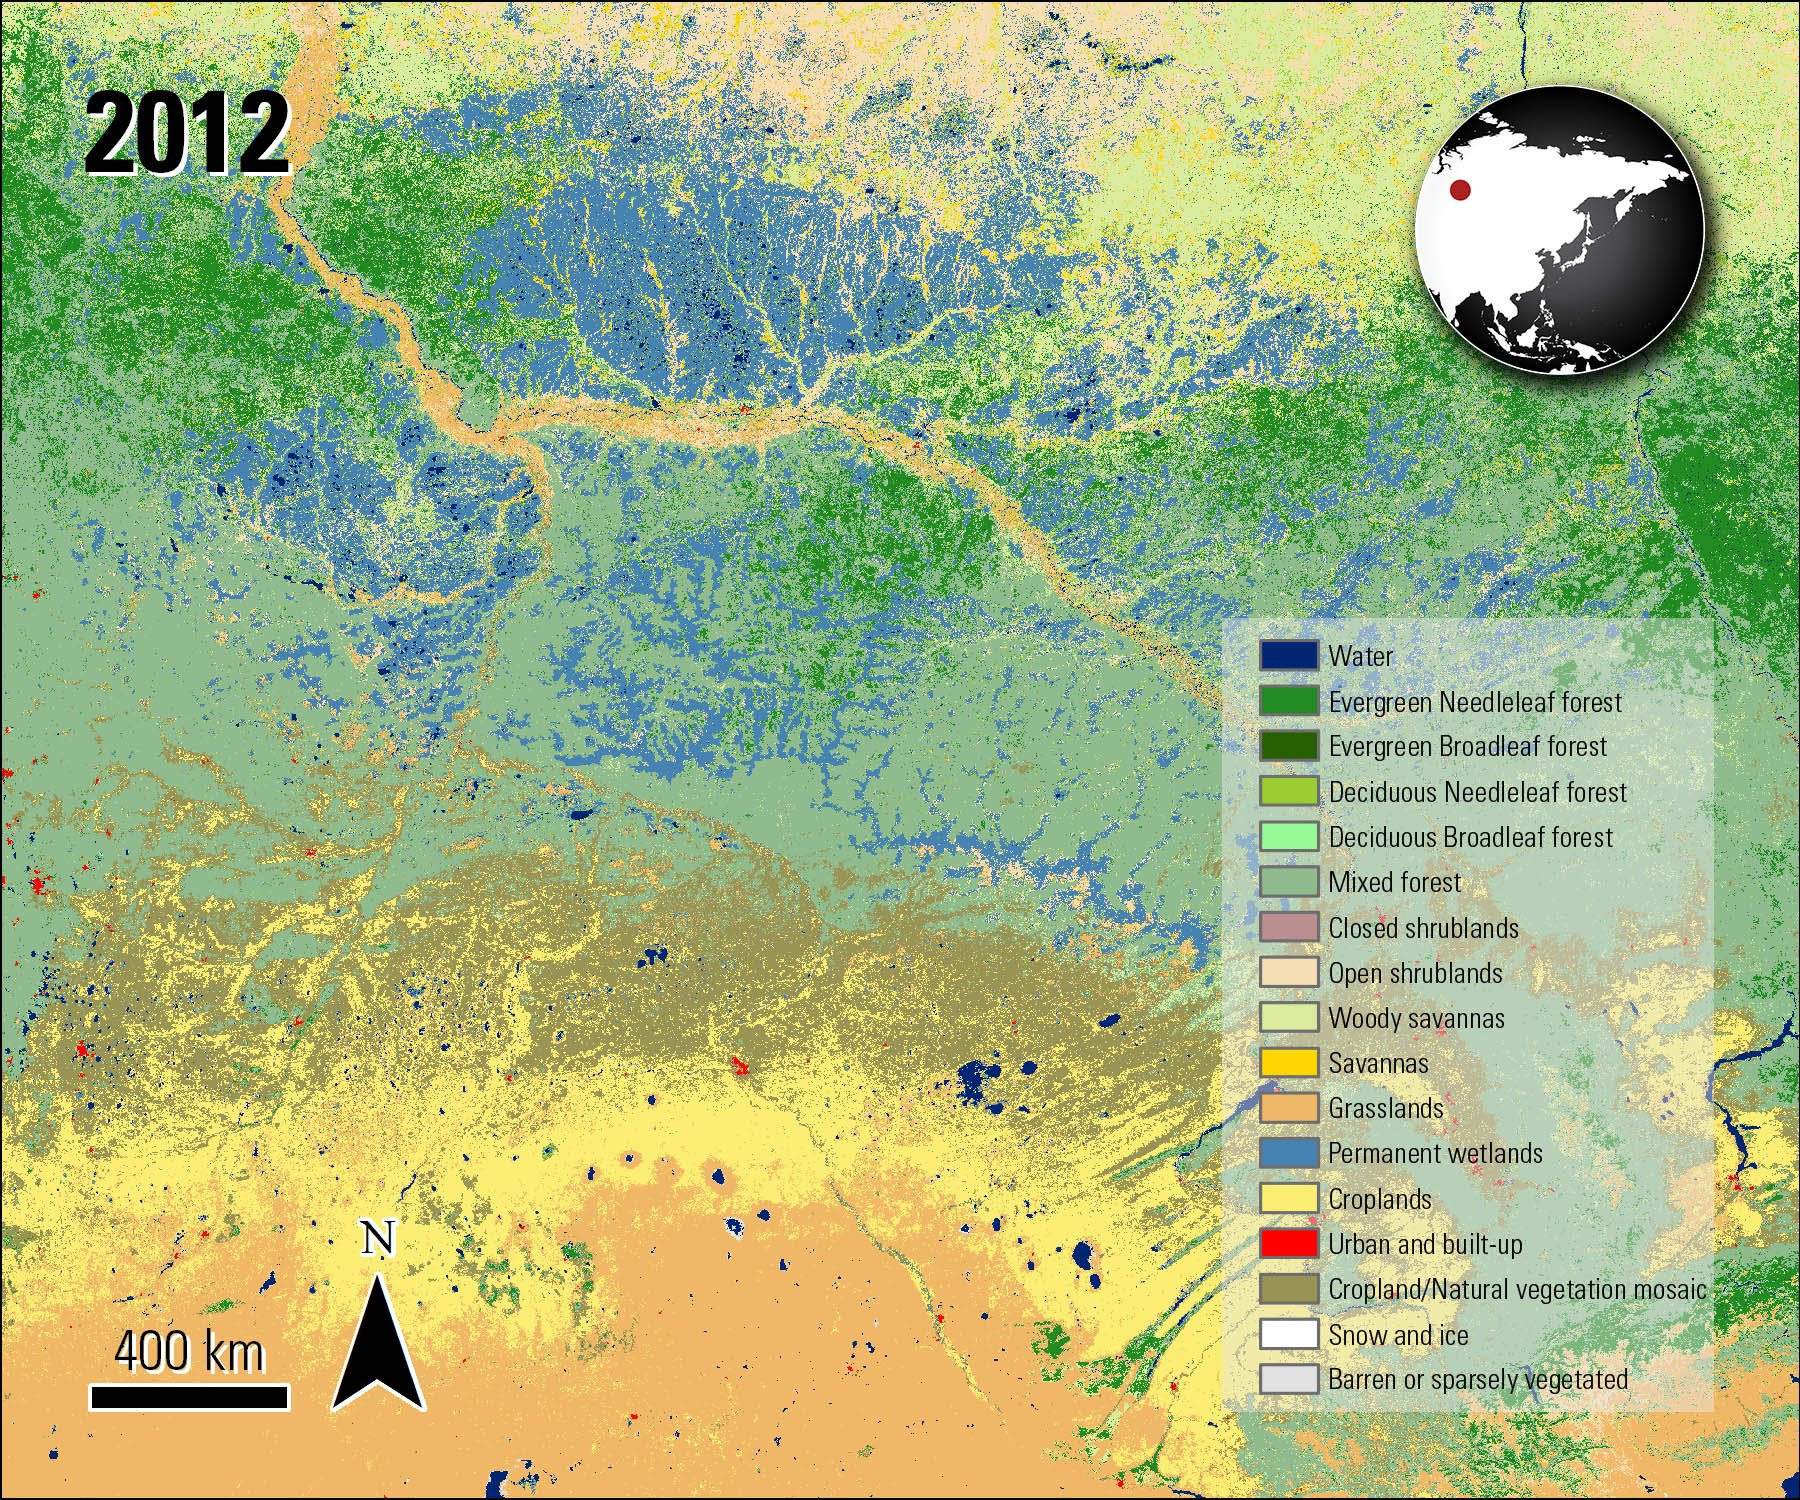 Combined MODIS Land Cover over Siberia, acquired in 2012.